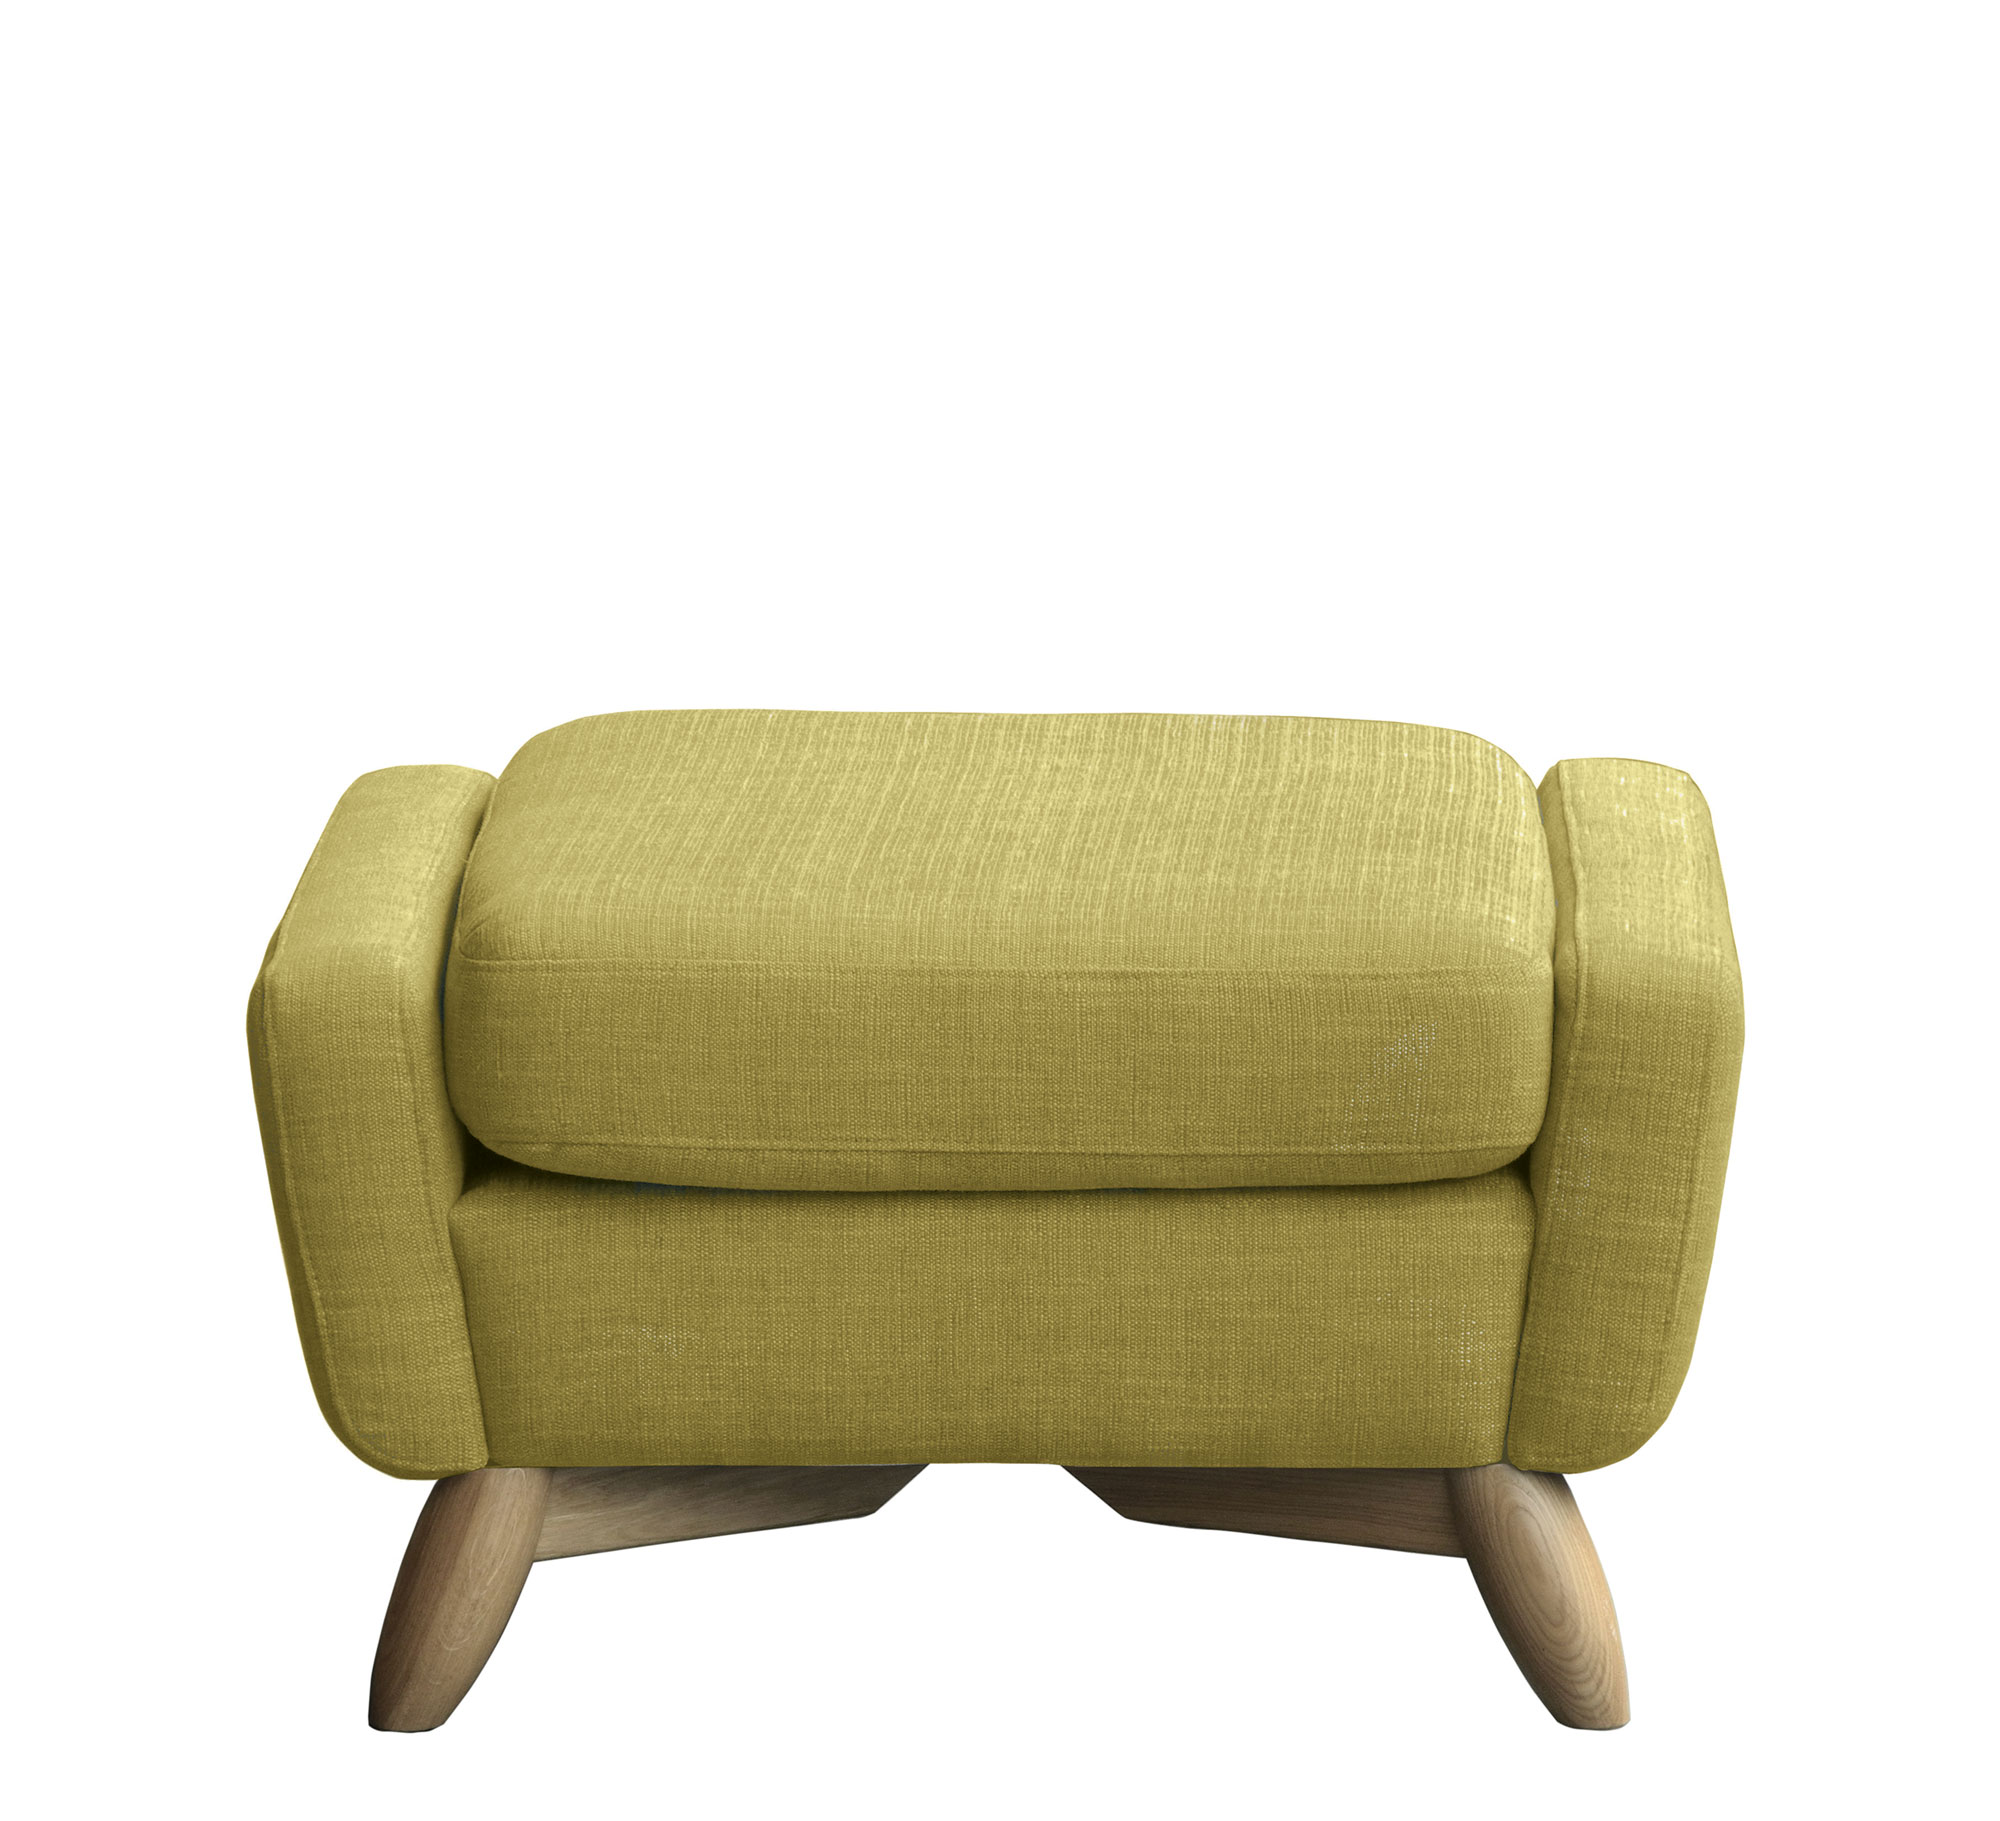 Sensational Cosenza Footstool Ercol Furniture Squirreltailoven Fun Painted Chair Ideas Images Squirreltailovenorg